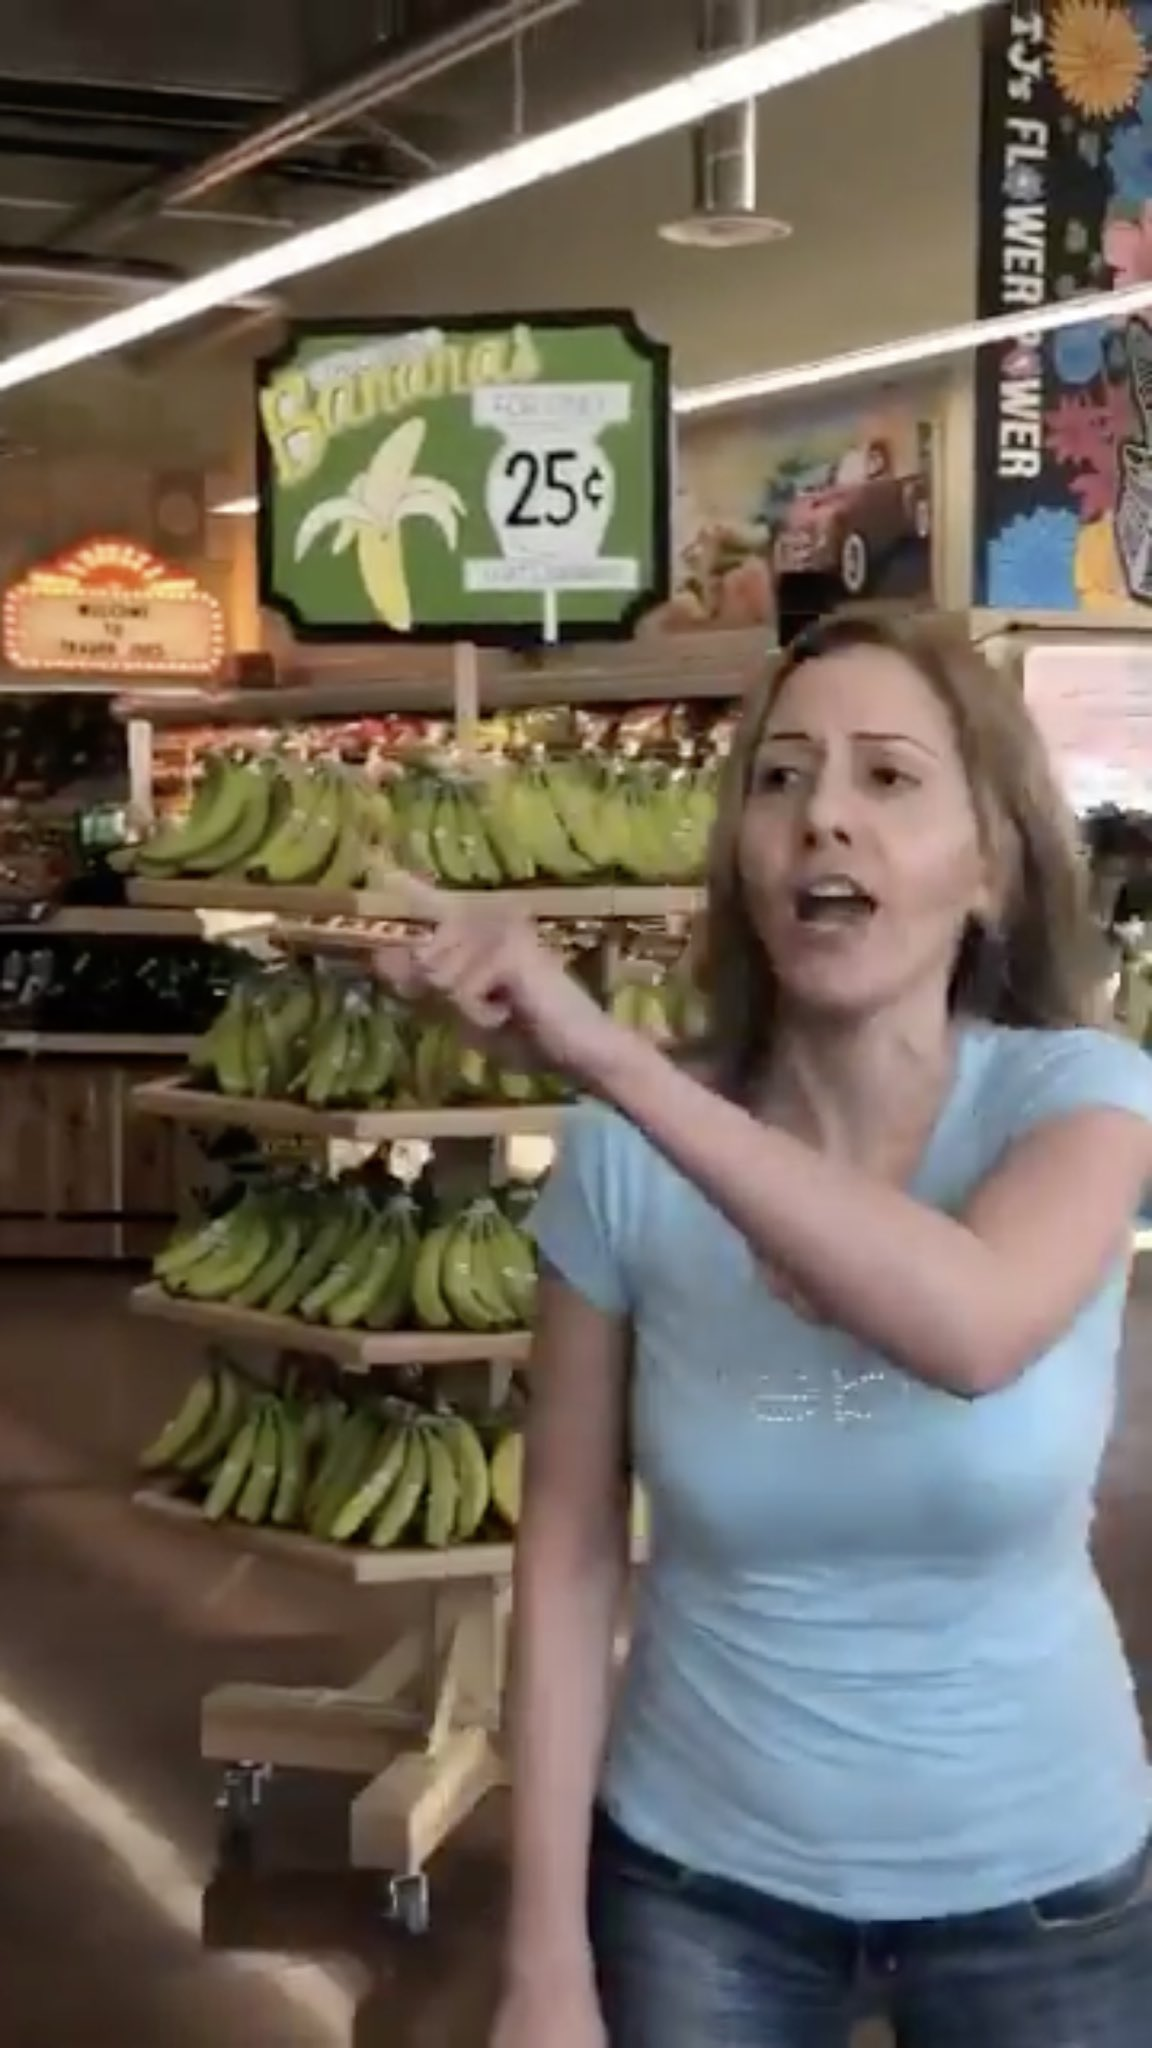 Trader Joe's Karen standing next to banana sign